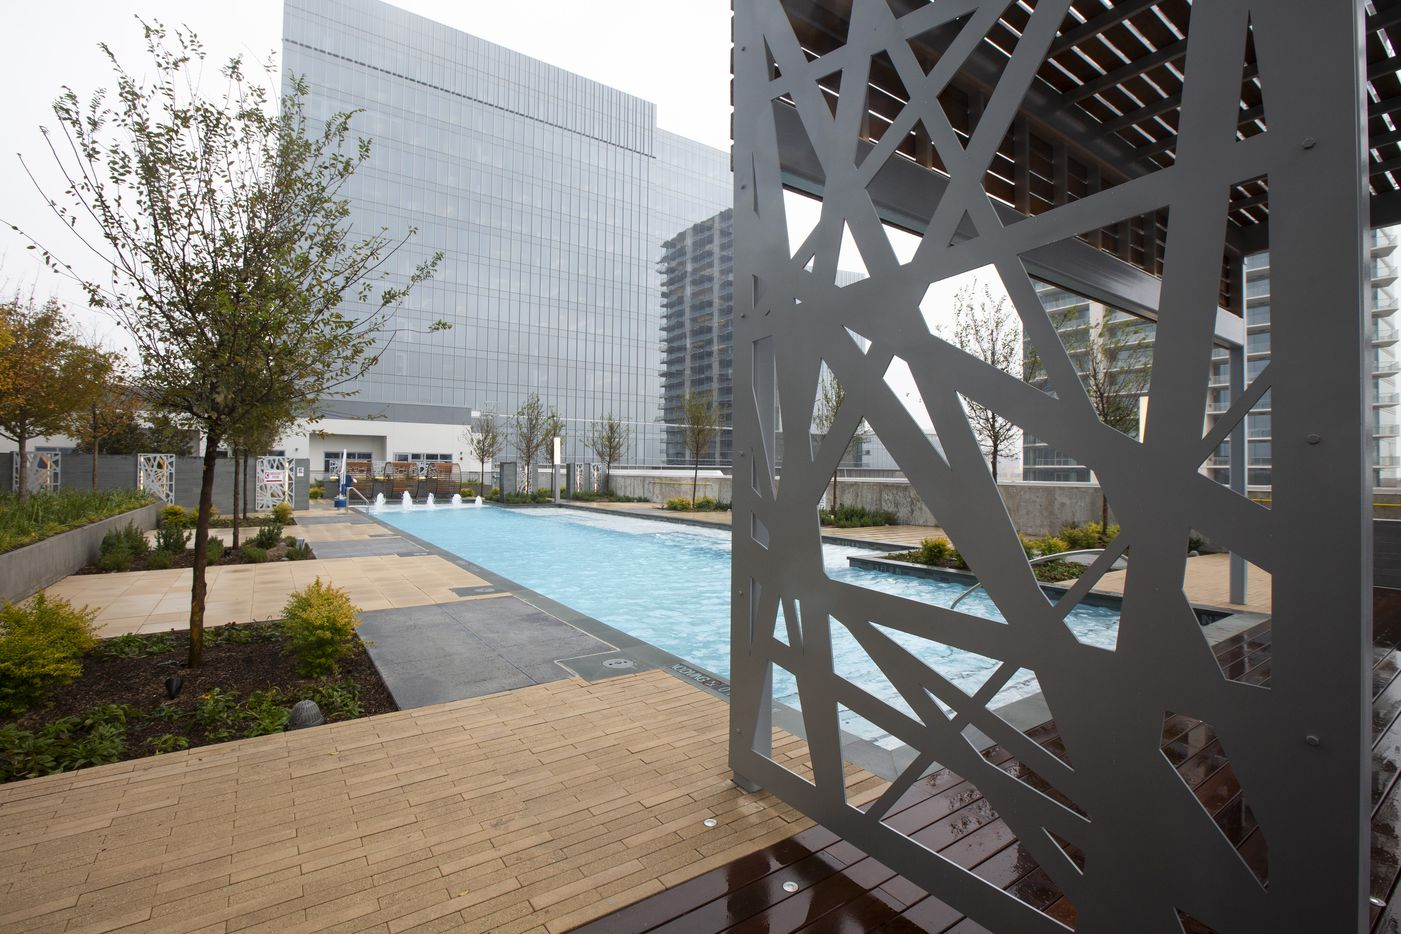 The eighth-floor pool deck the new LVL29 apartment high-rise in Plano on Tuesday, Nov. 5, 2019. The 29-story building the first high-rise residential building to open in the Legacy West area, and its first residents are expected to move in Dec. 1. (Lynda M. Gonzalez/The Dallas Morning News)